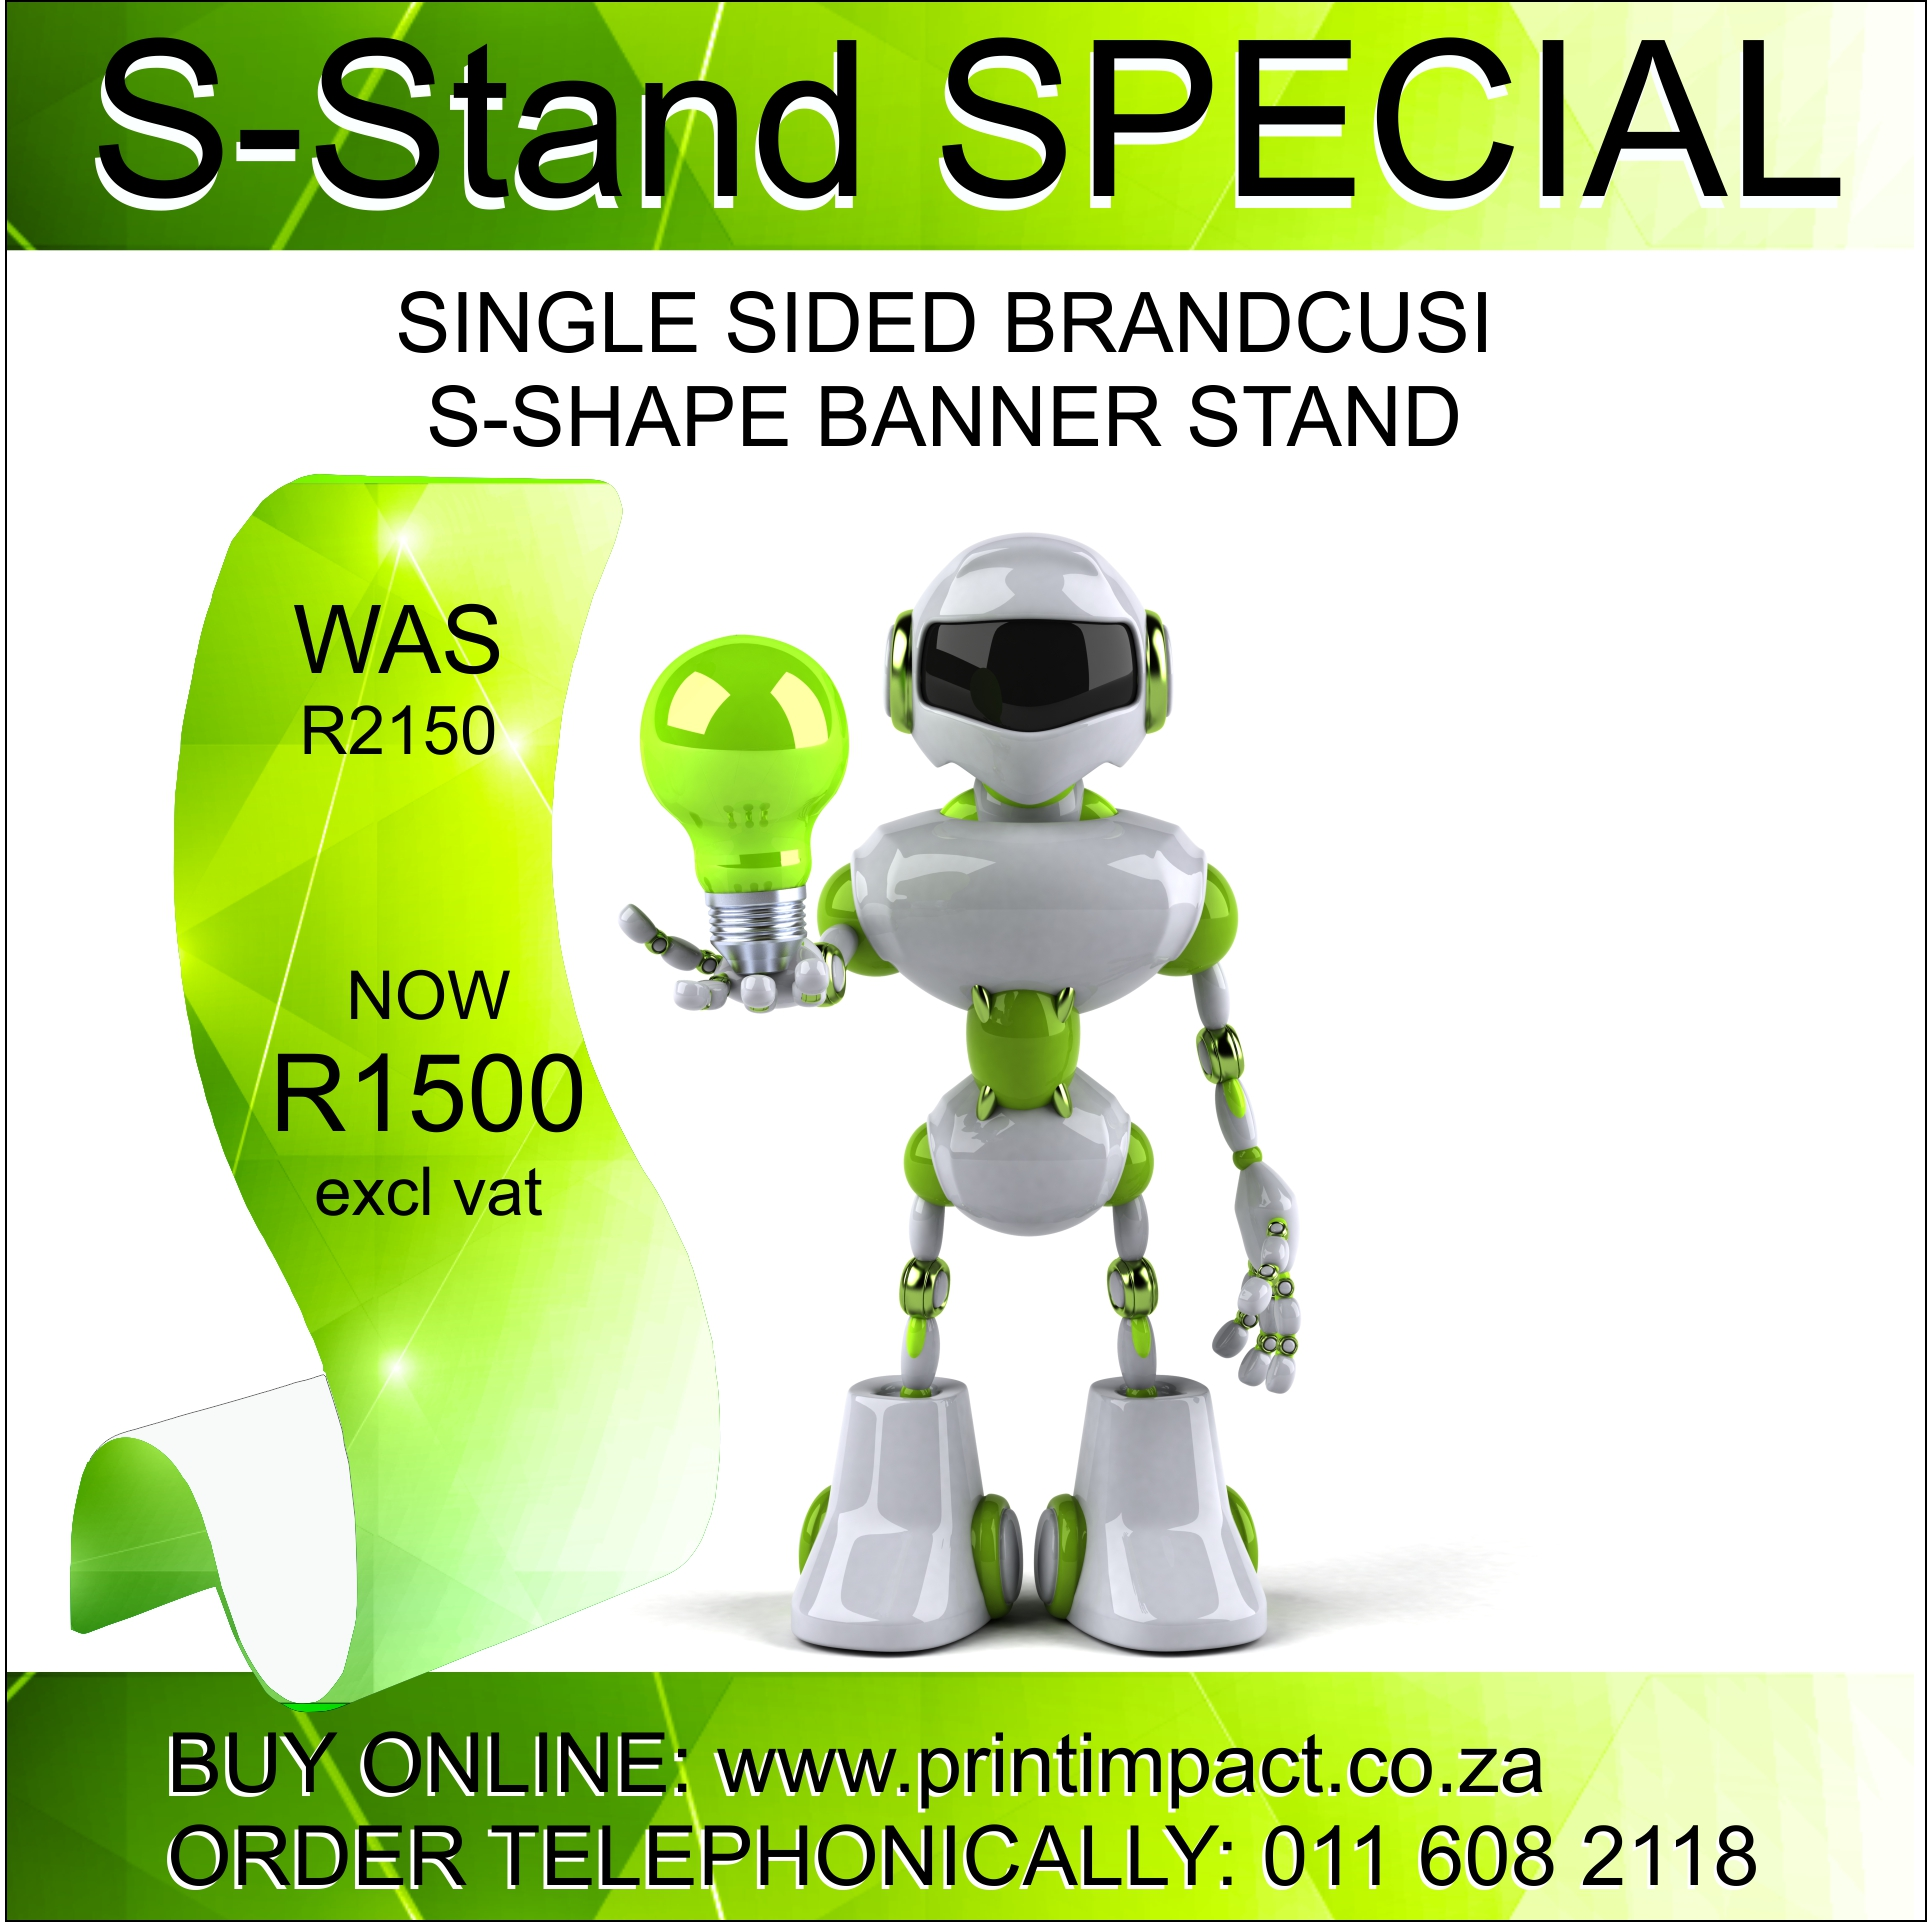 Brandcusi S Shape Banner Stand SPECIAL PRICE